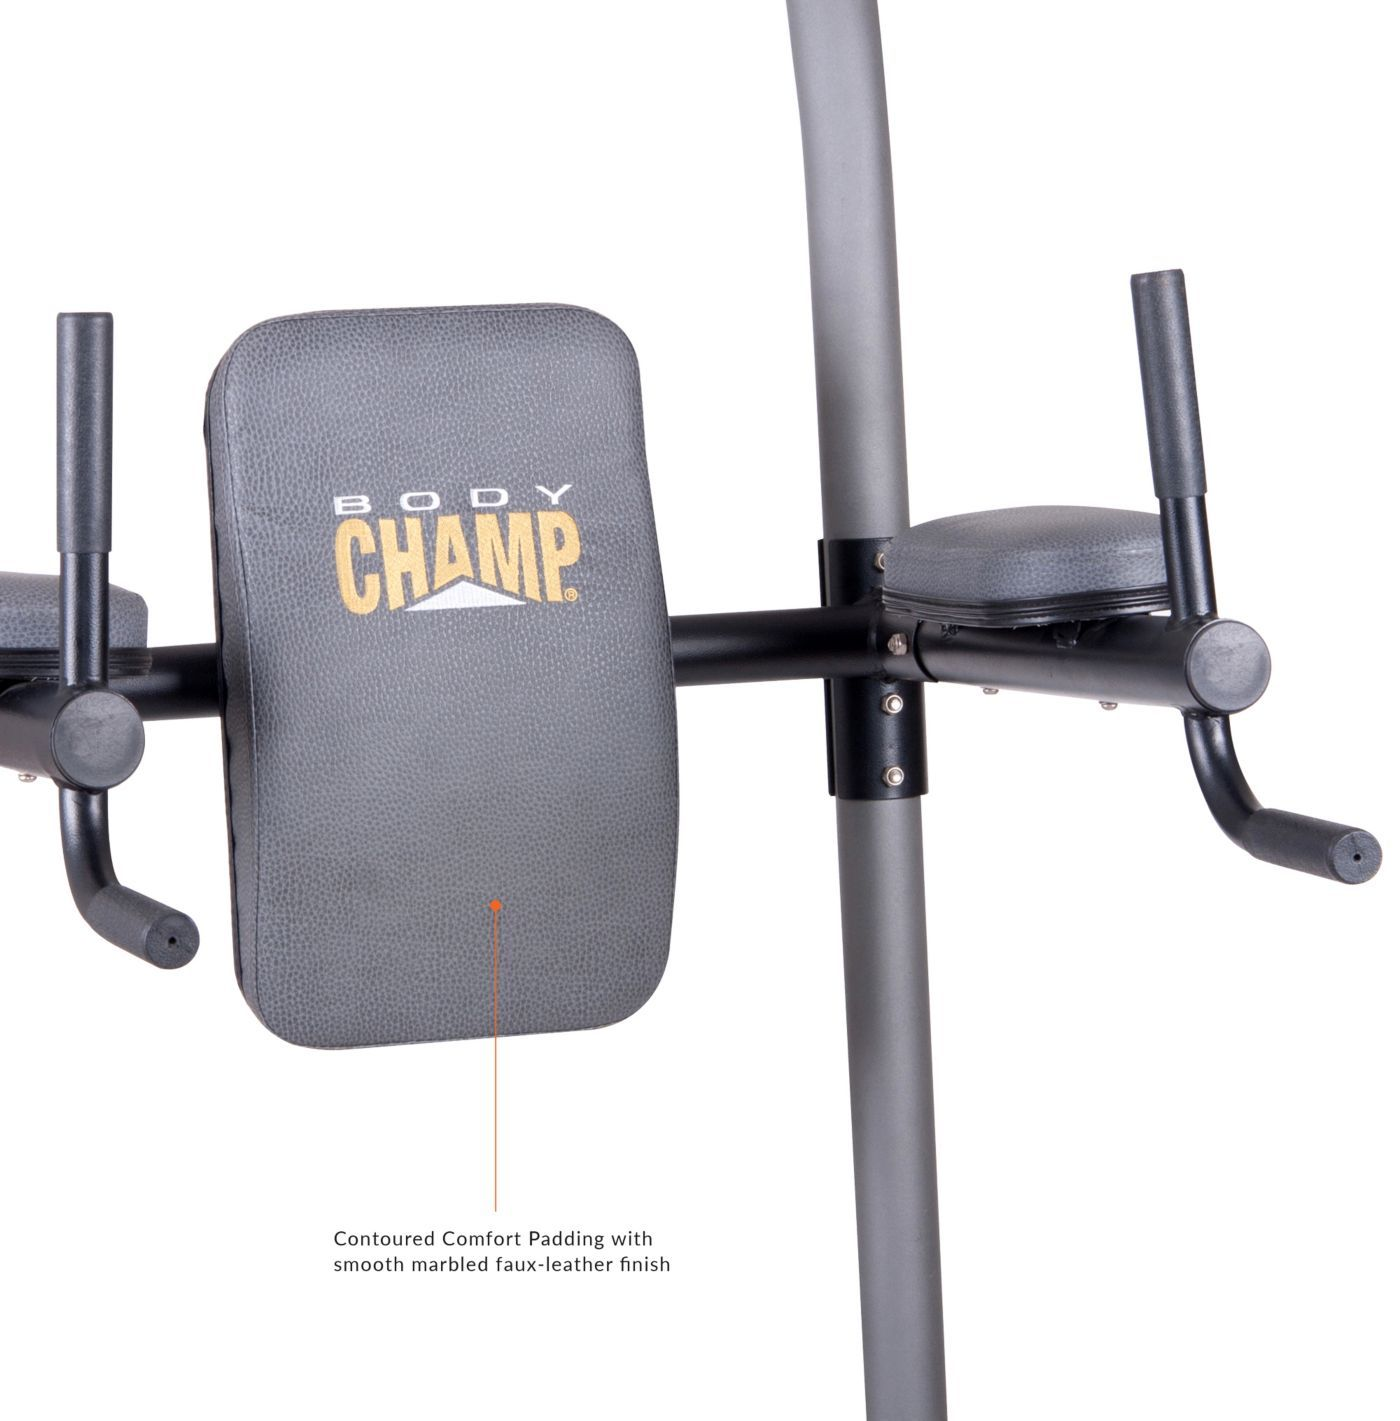 Pin by Lance Lemon on Gym Power tower, Pull ups, Champs